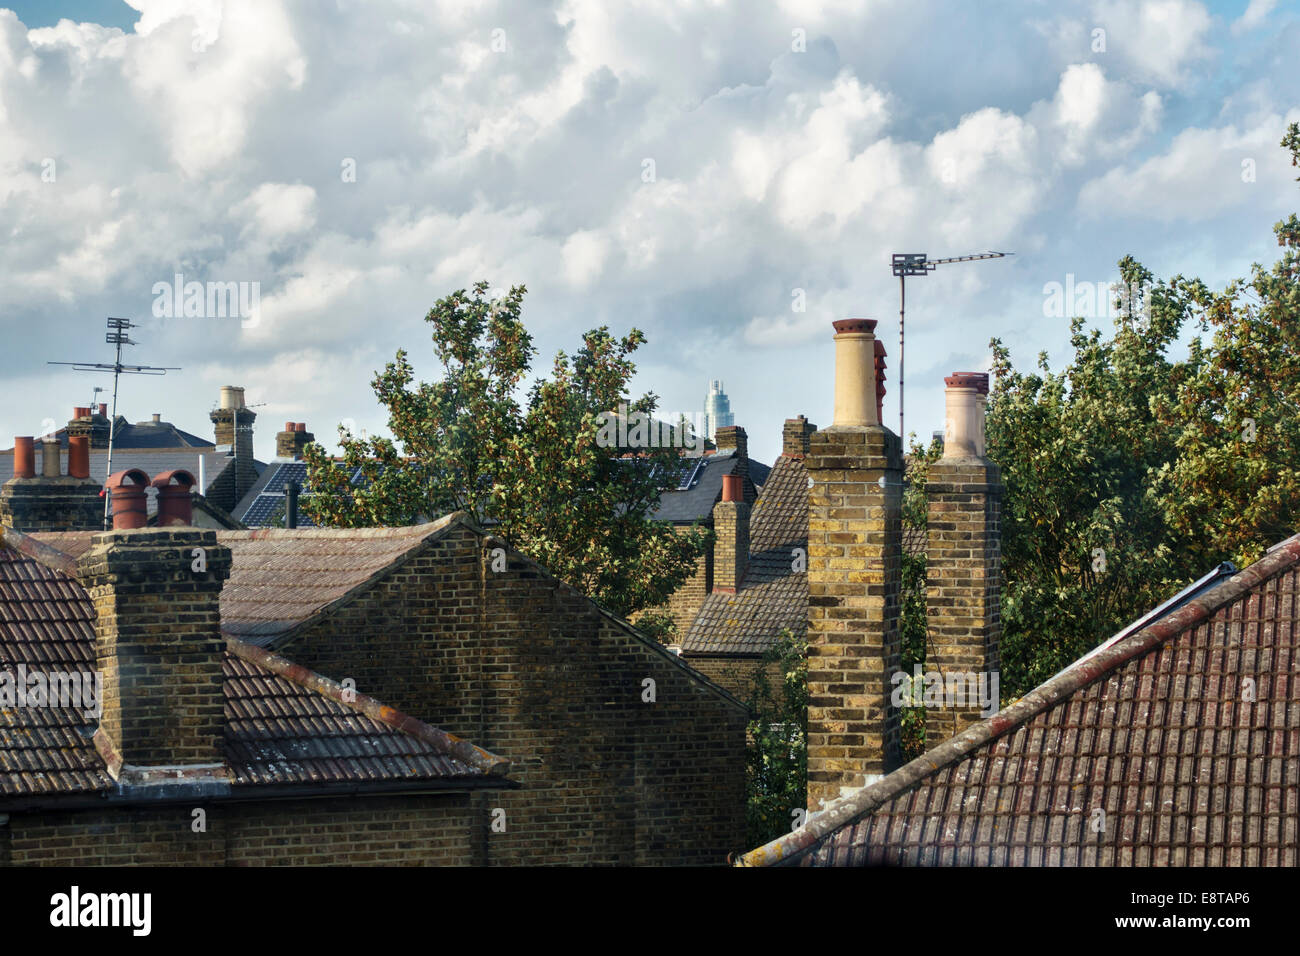 London, UK. A view over the rooftops of Brixton with the St George Wharf Tower in the distance - Stock Image